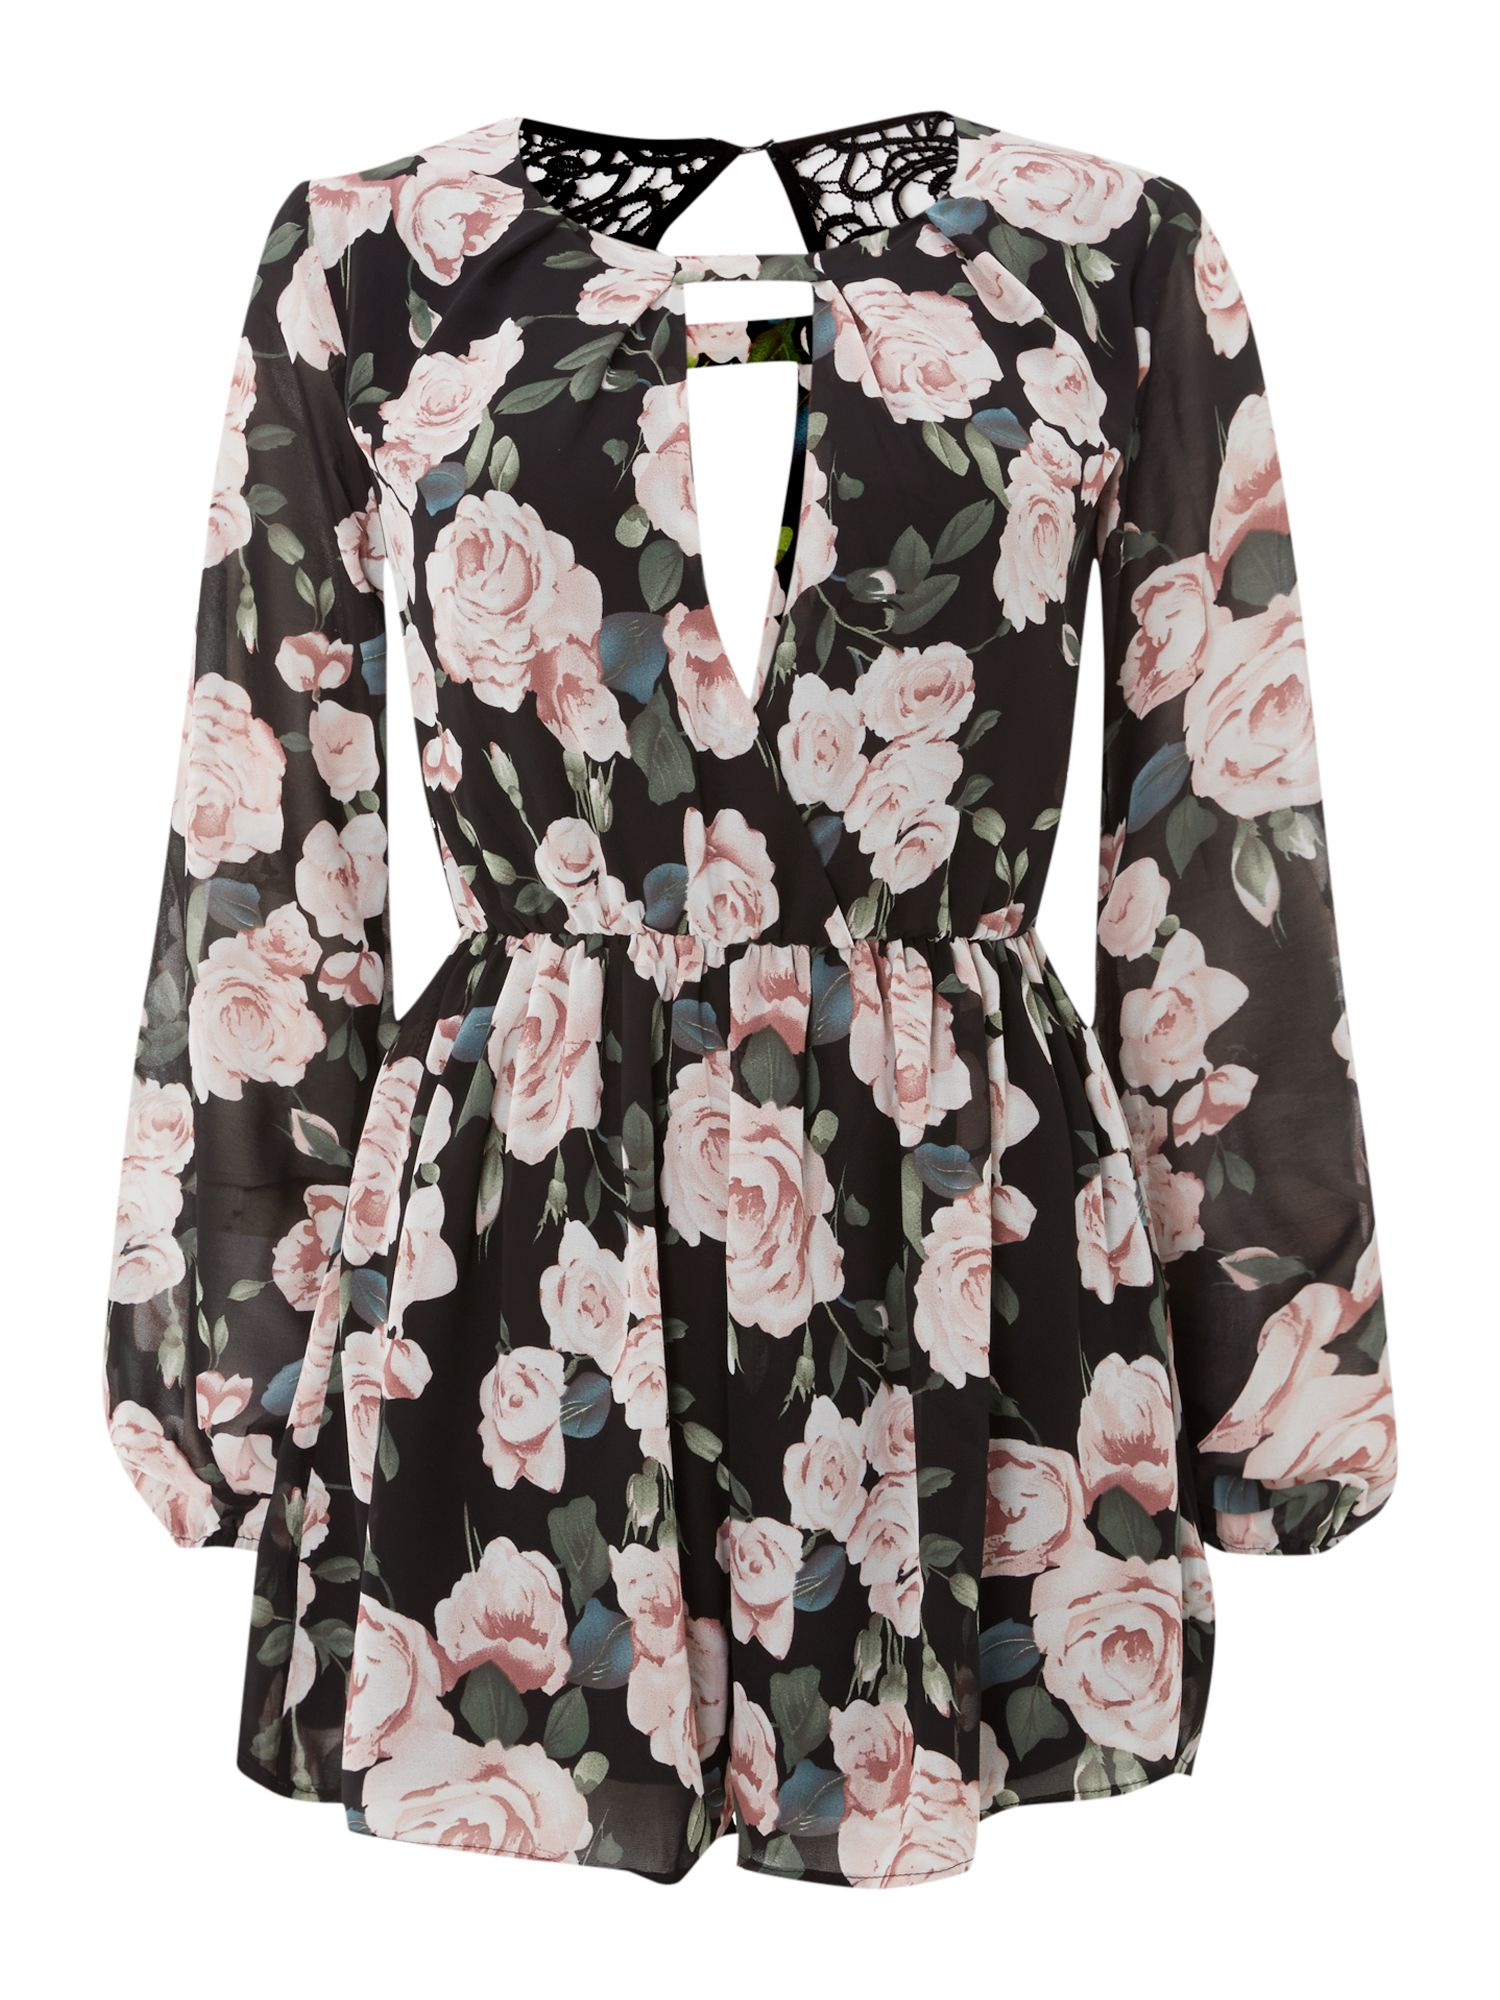 LS Floral Print Crochet Back Playsuit